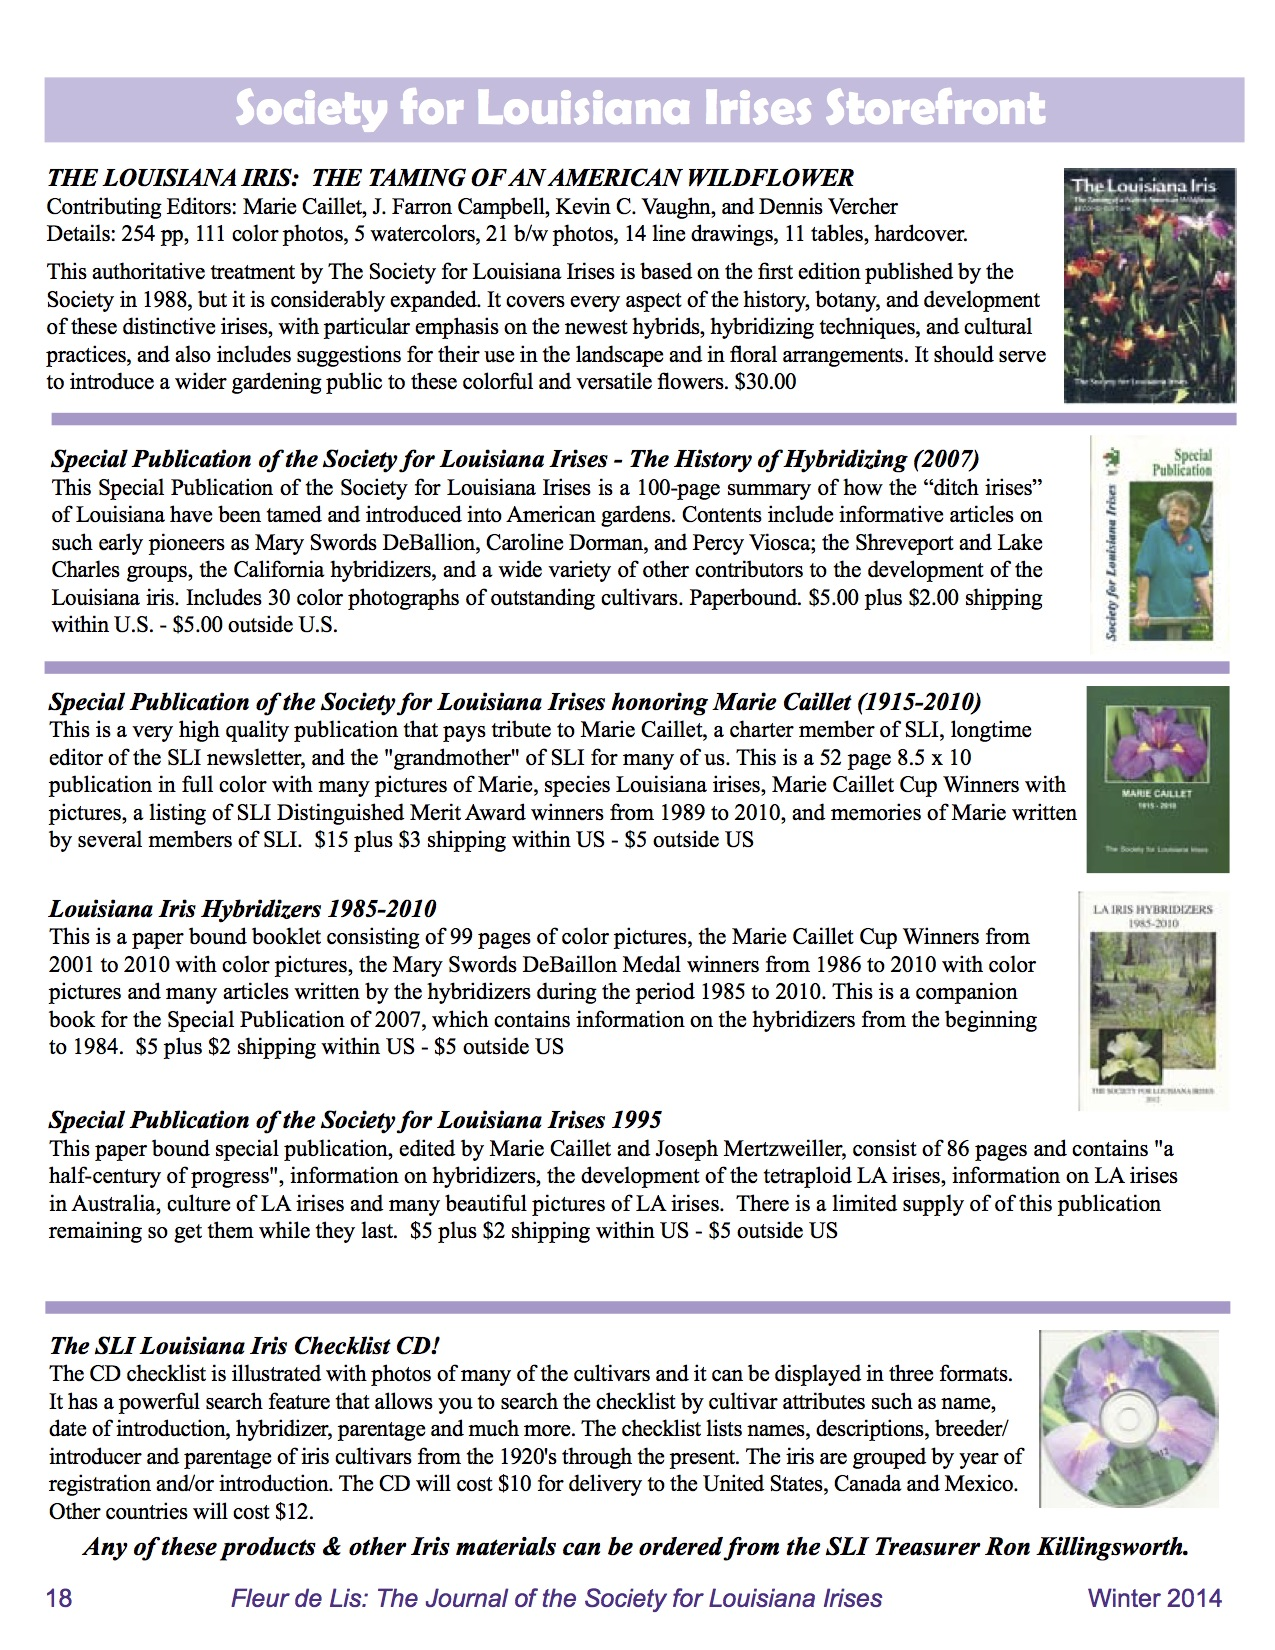 A listing of the publications of the Society for Louisiana Irises